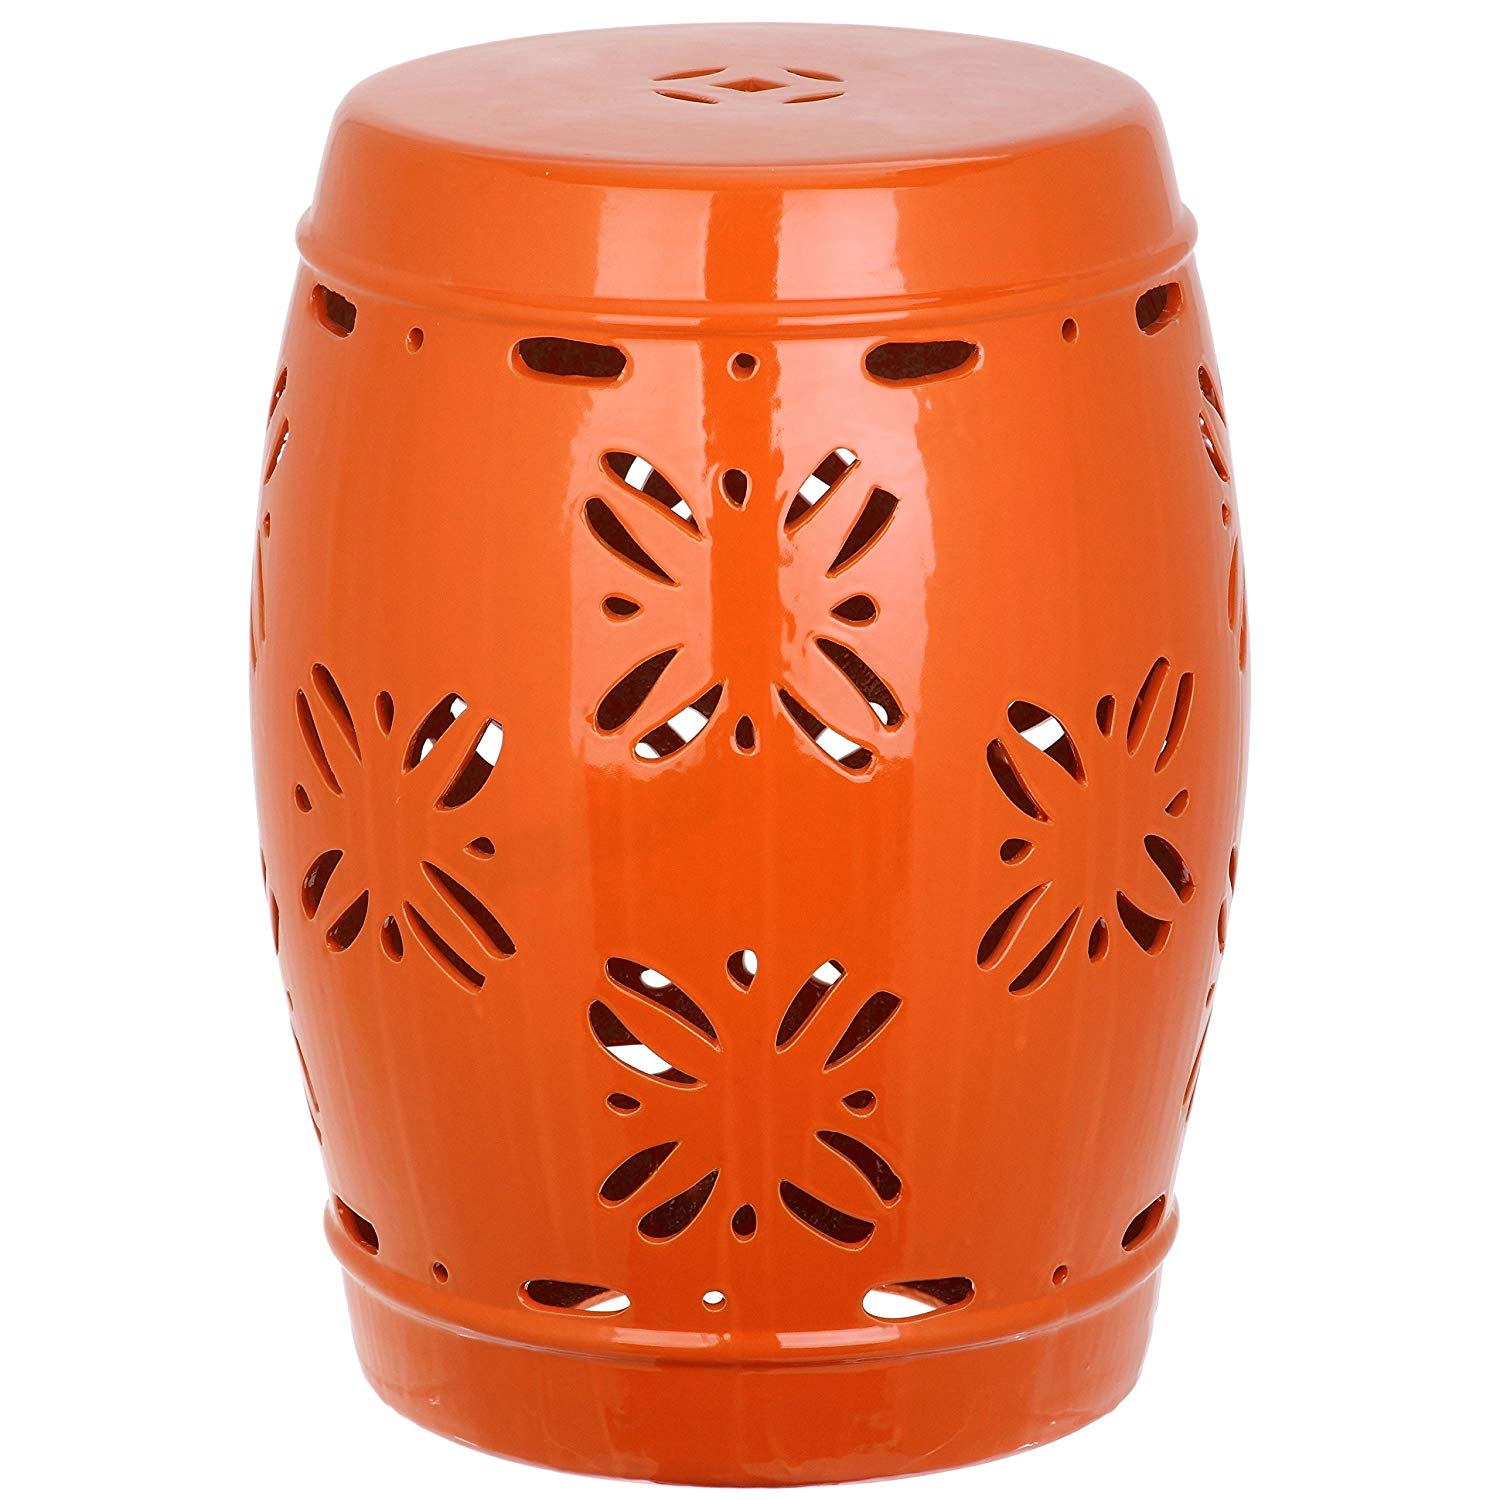 Pleasing Cheap Orange Garden Stool Find Orange Garden Stool Deals On Lamtechconsult Wood Chair Design Ideas Lamtechconsultcom